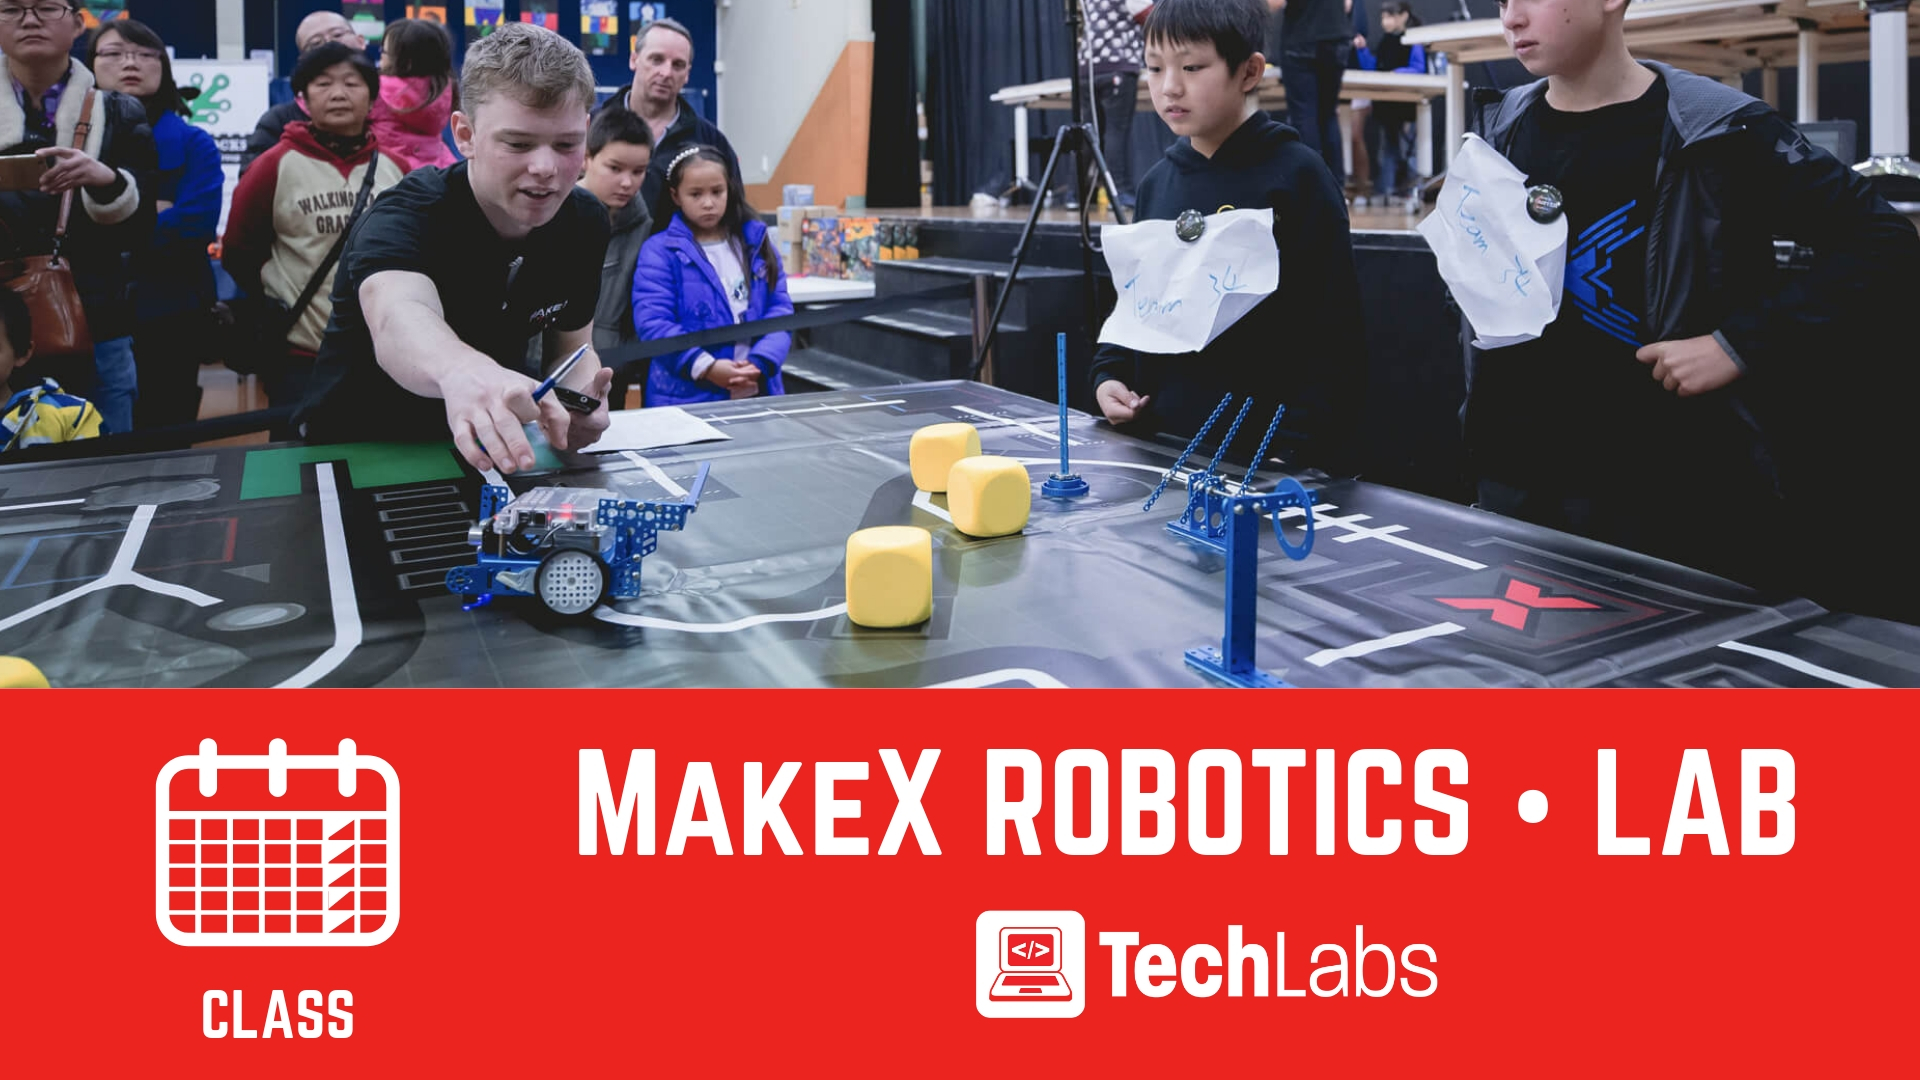 TechLabs | MakeX Robotics Lab | Class